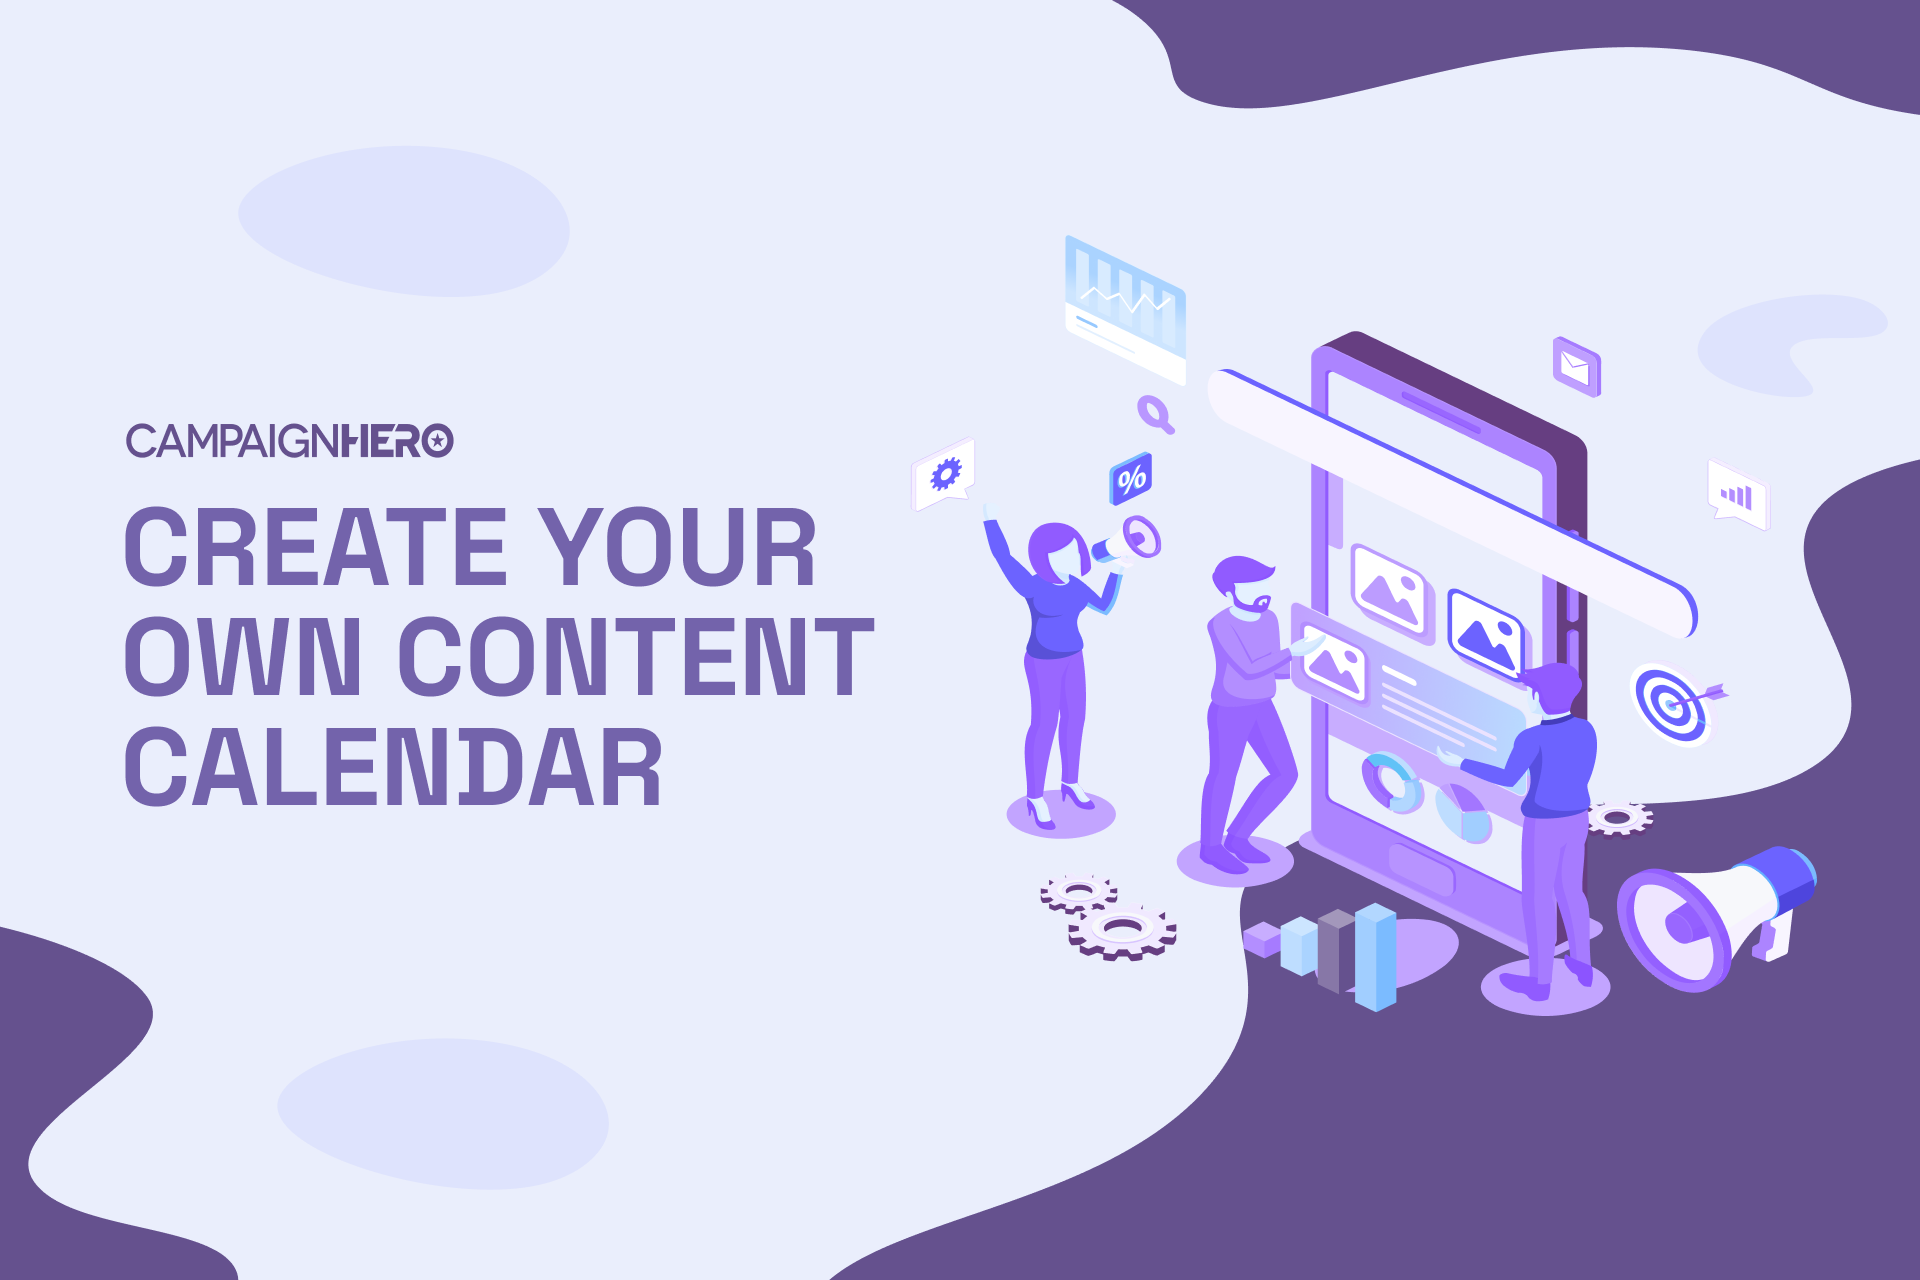 How To Create A Content Calendar For Your Small Business [Free Template]